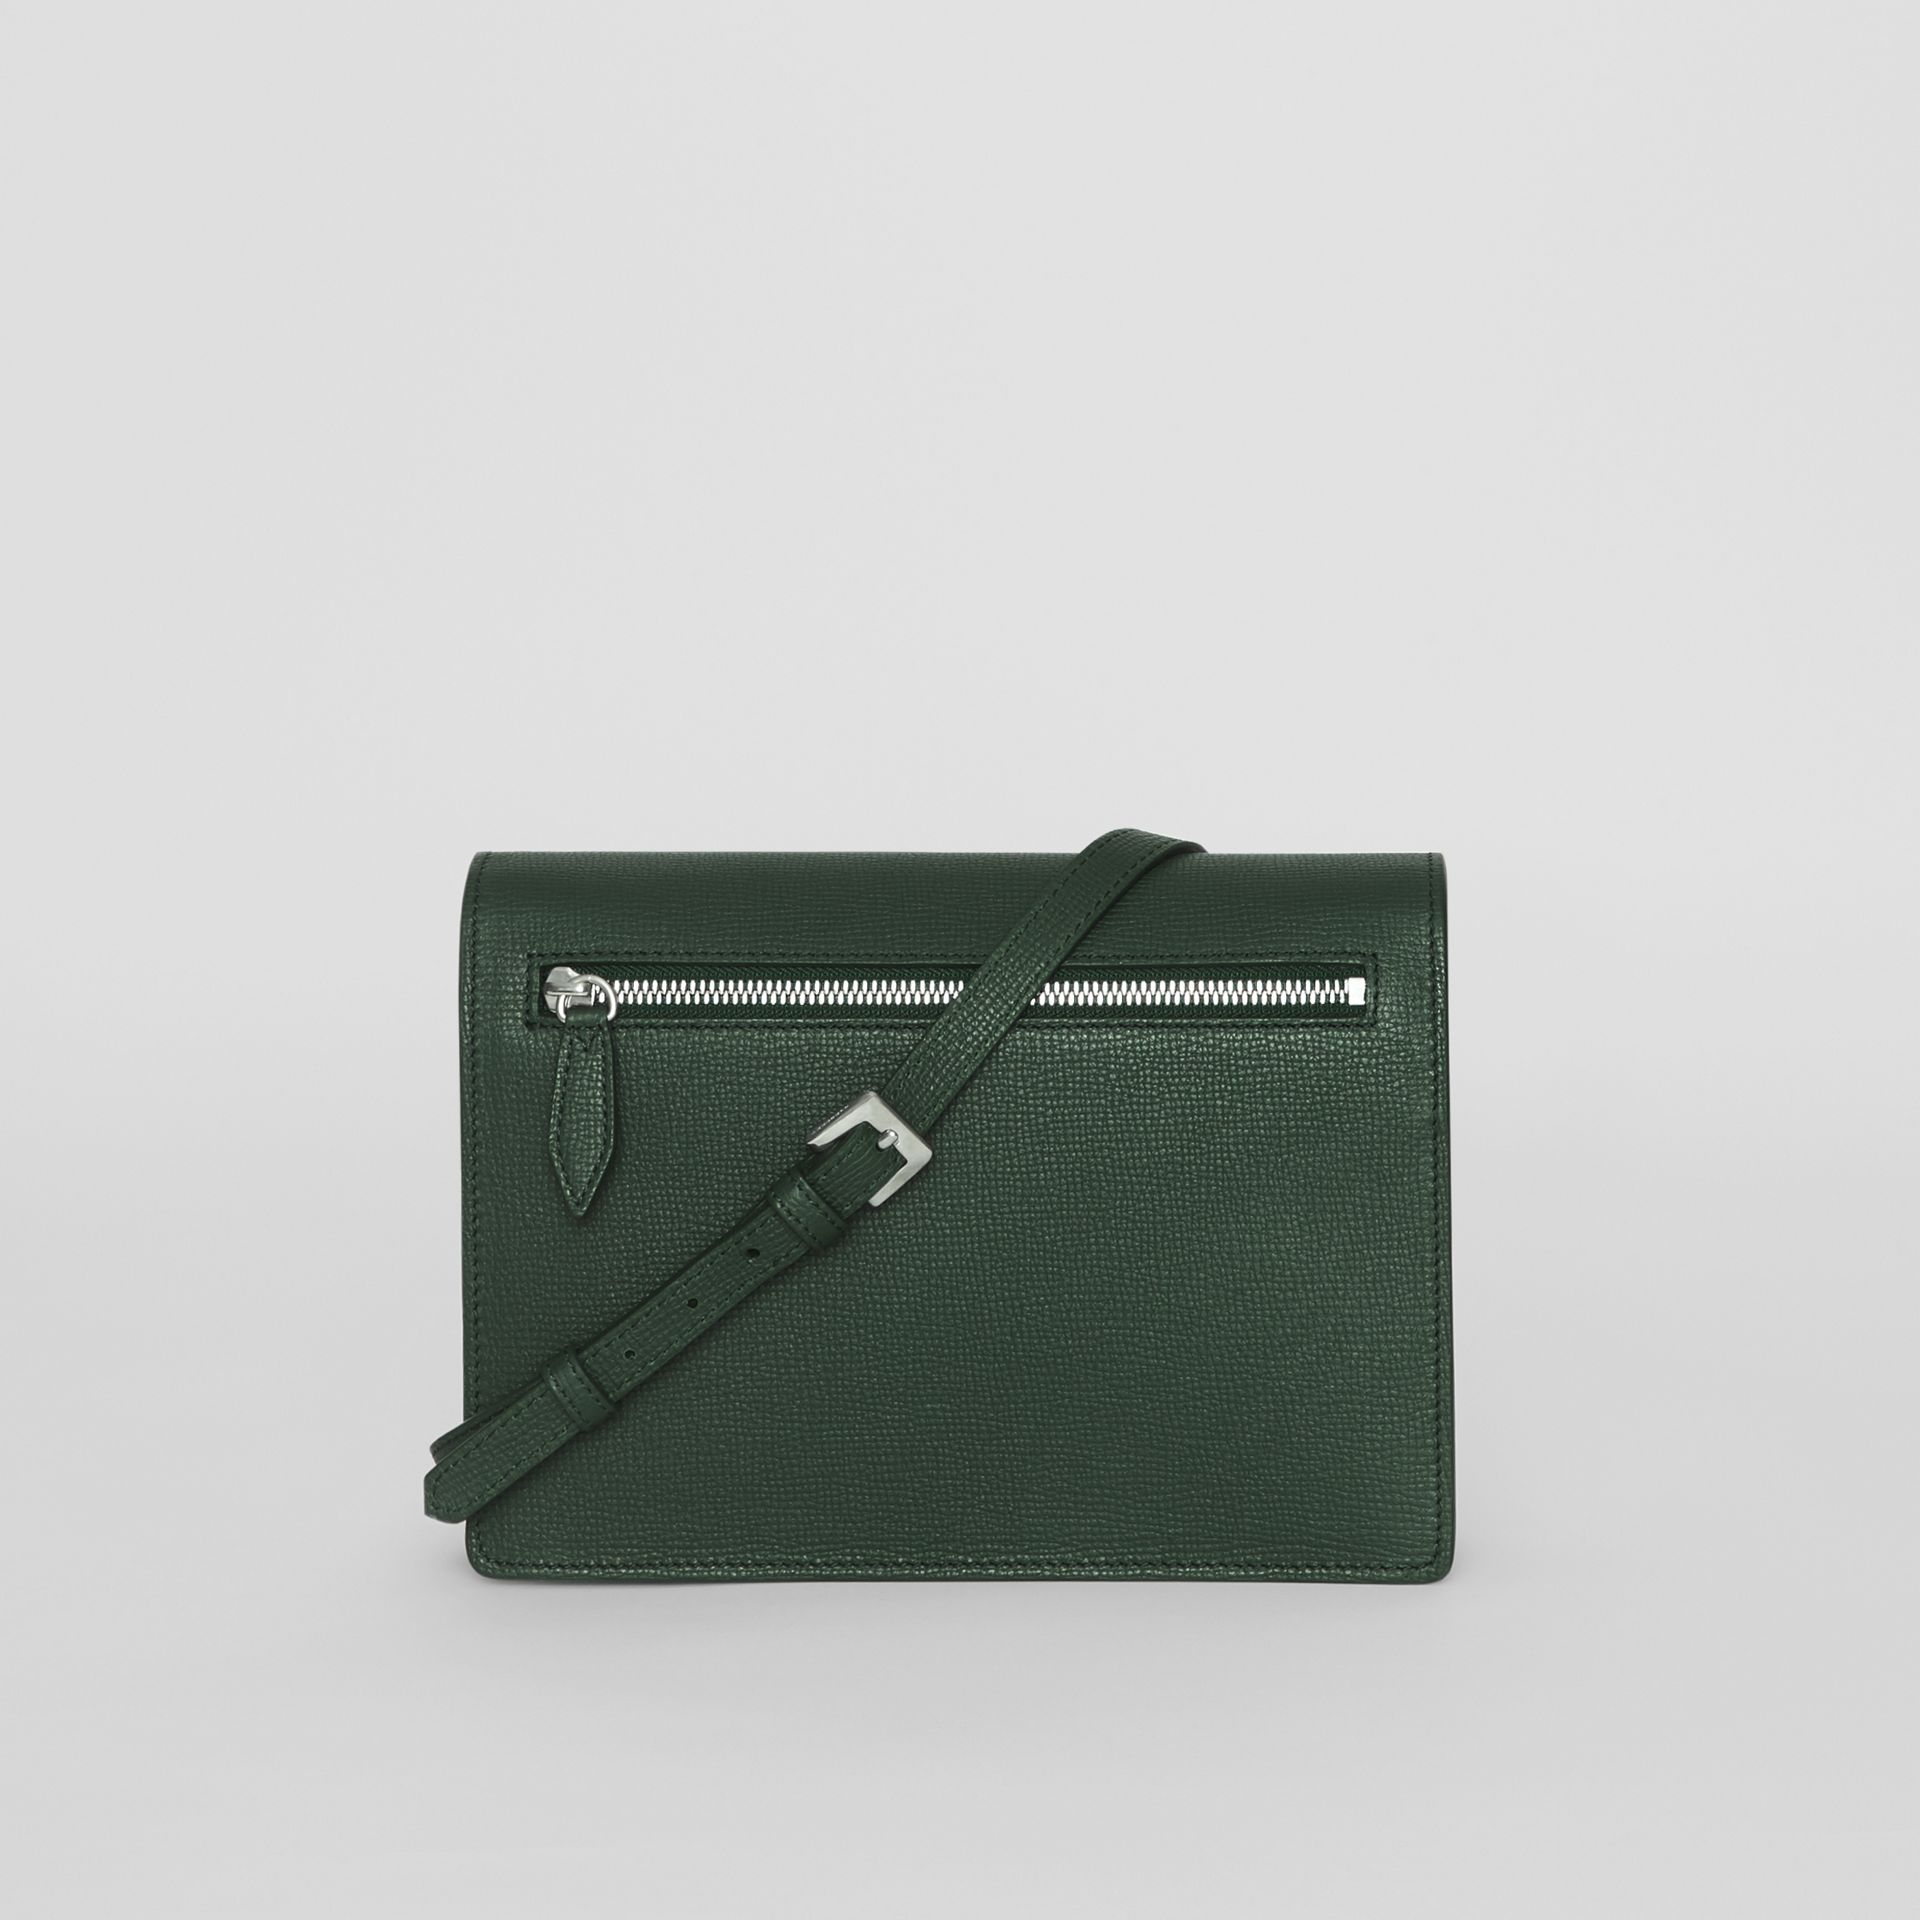 Small Vintage Check and Leather Crossbody Bag in Green - Women | Burberry United States - gallery image 7